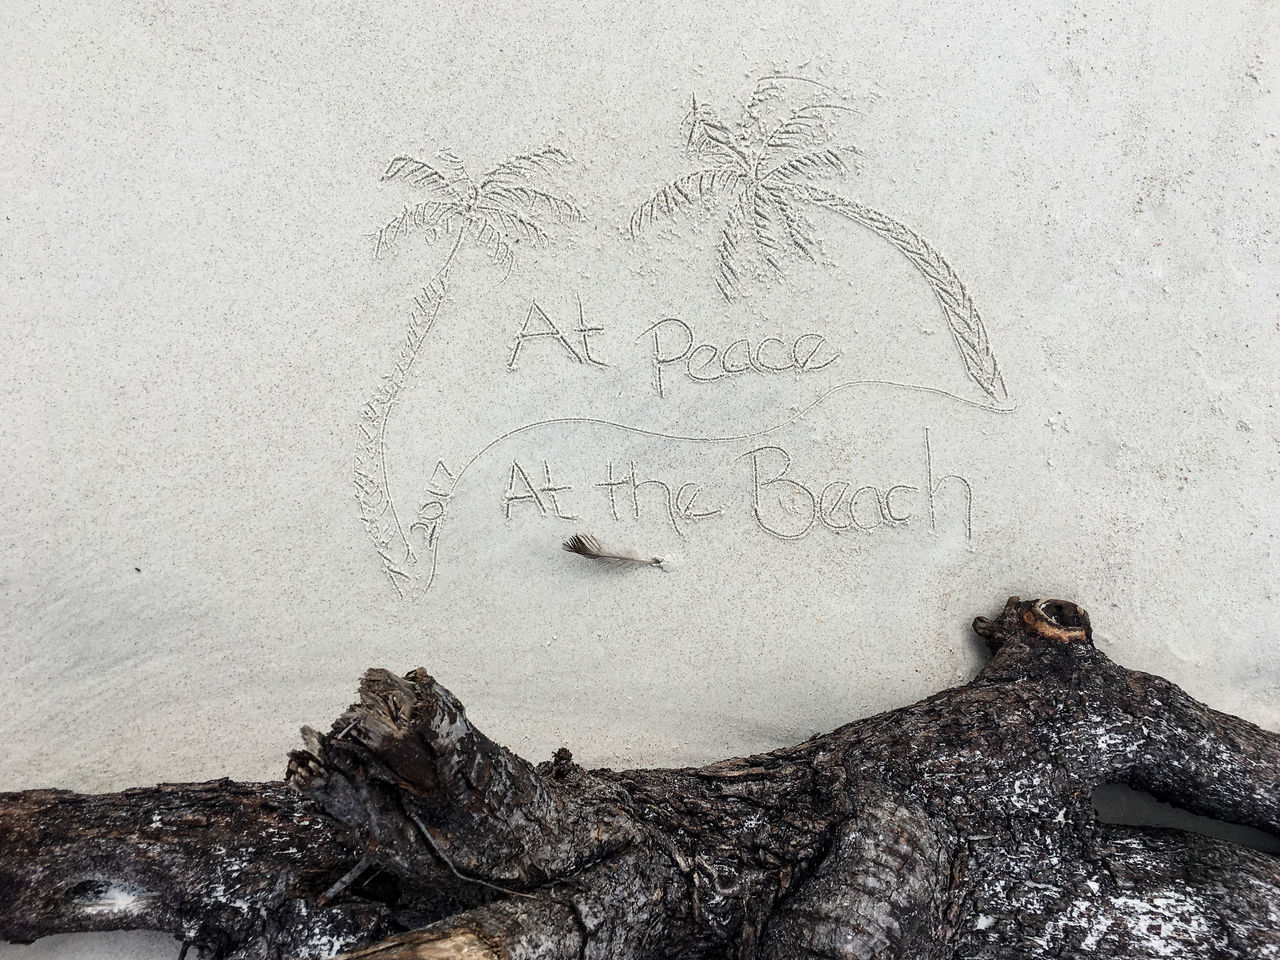 At Peace at the Beach Beach Day Handwriting  Love Nature No People Outdoors Phrases Sand Text Vacation